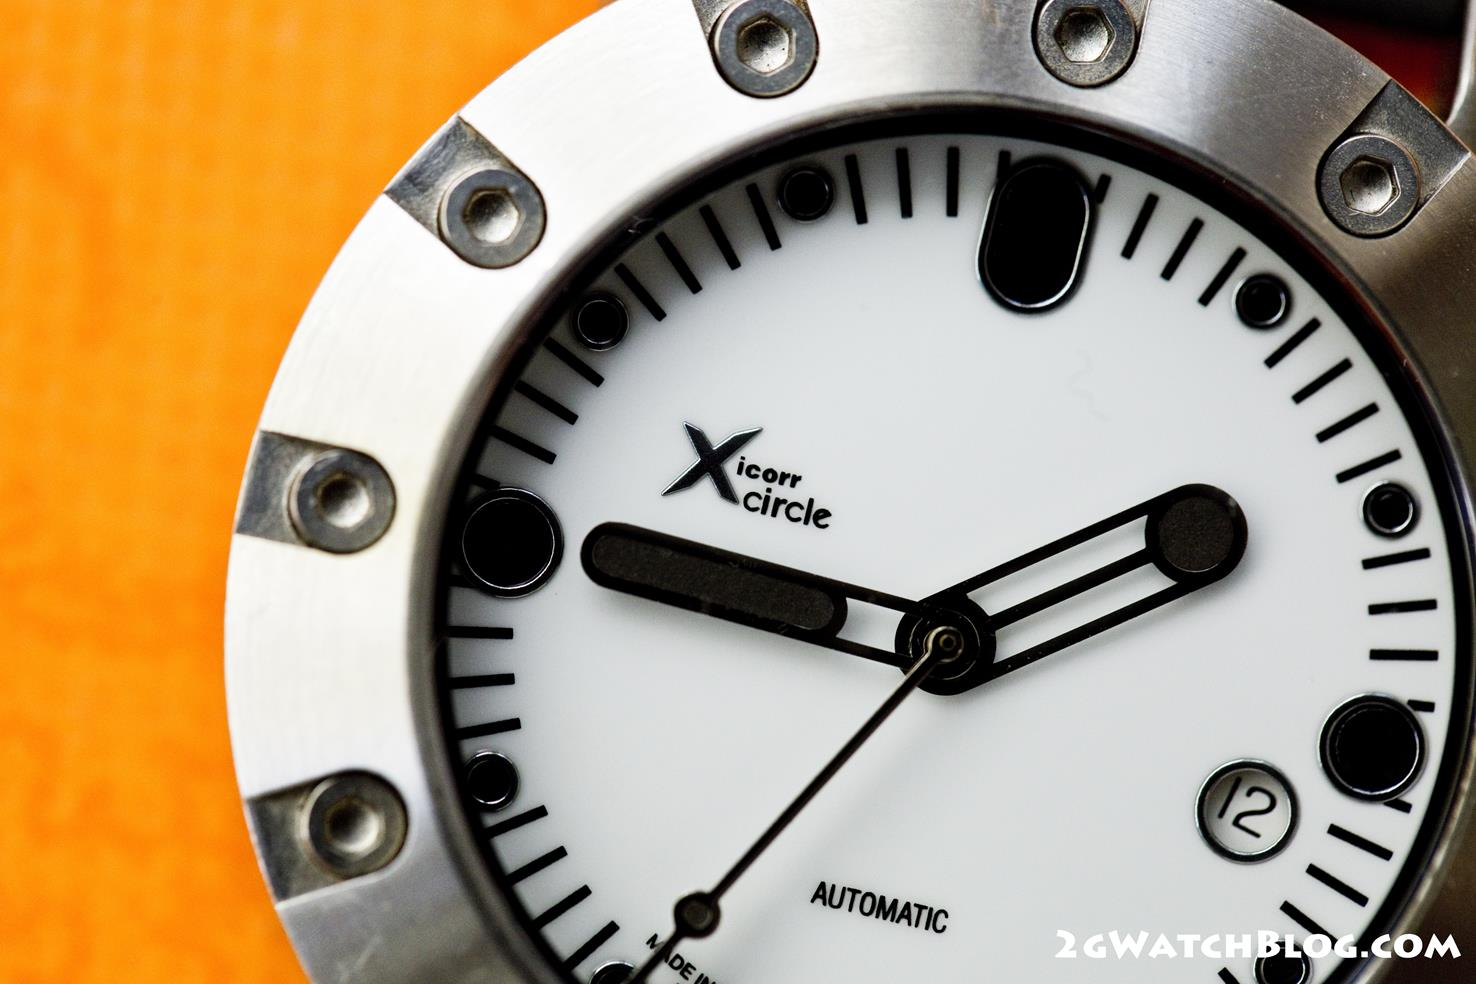 About Polish Brands – meeting with Xicorr Watches